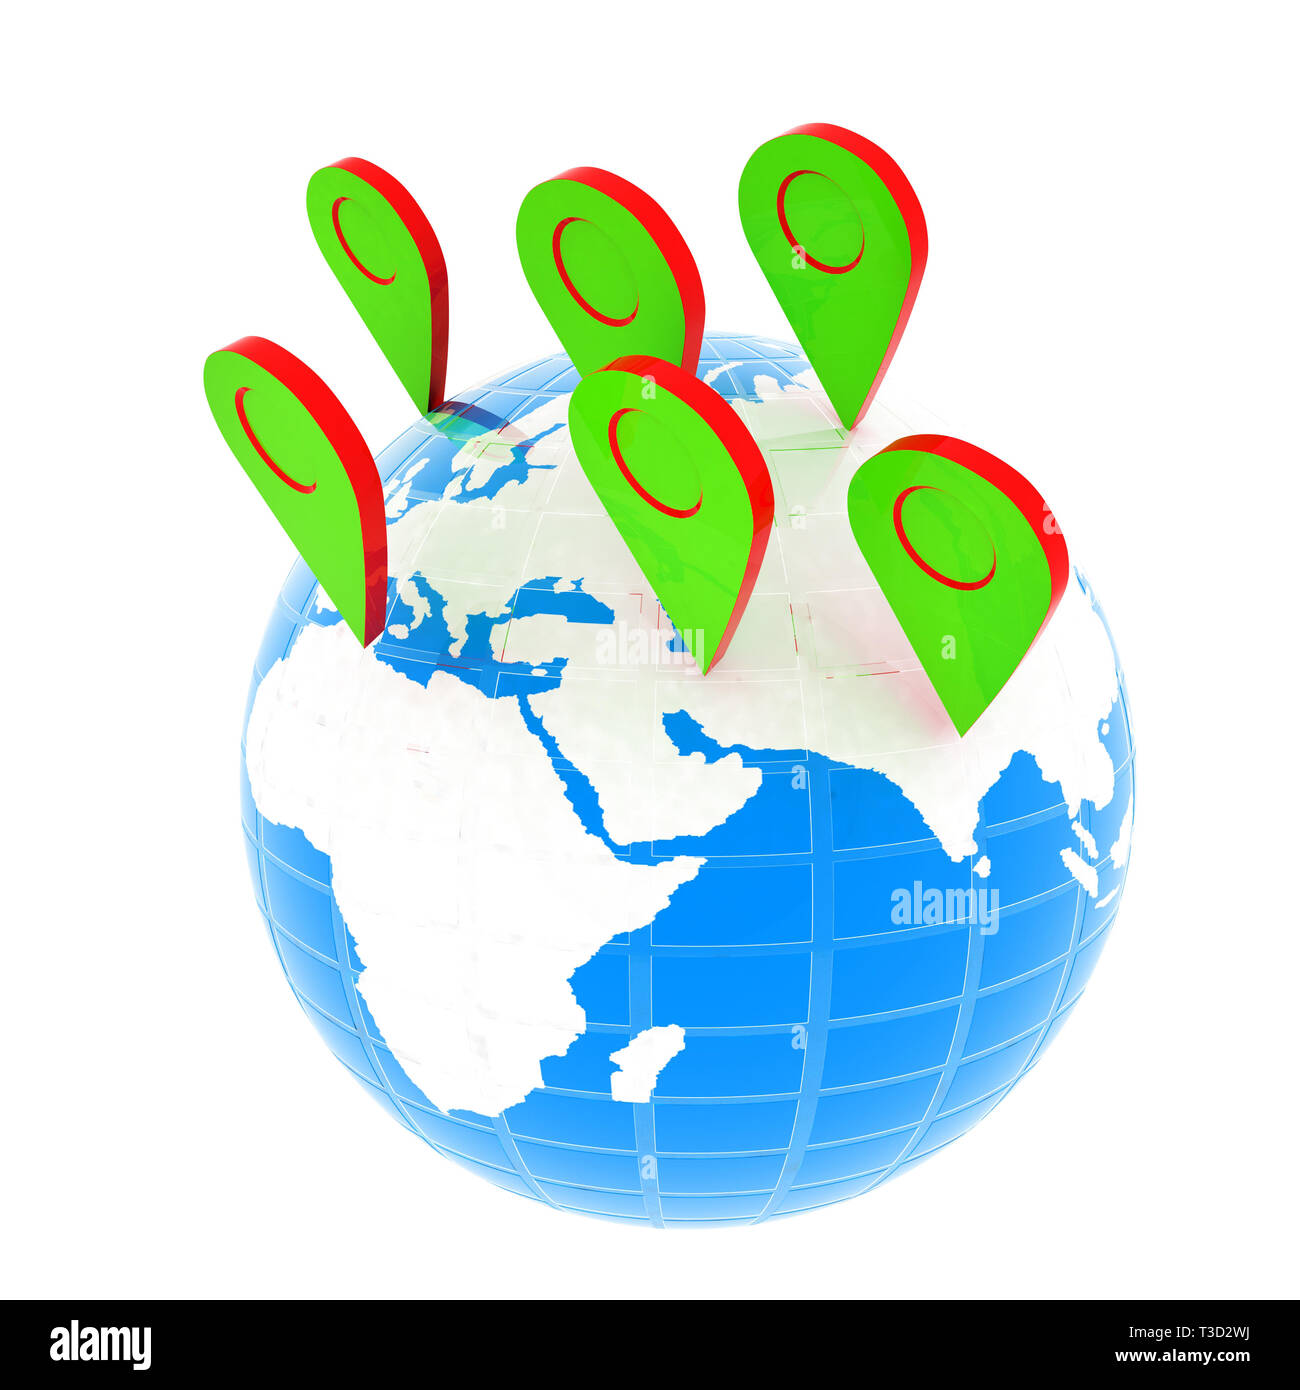 Planet Earth and map pins icon. Earth globe and colorful map labels. Modern graphic elements for web banners, websites, printed materials, infographic Stock Photo